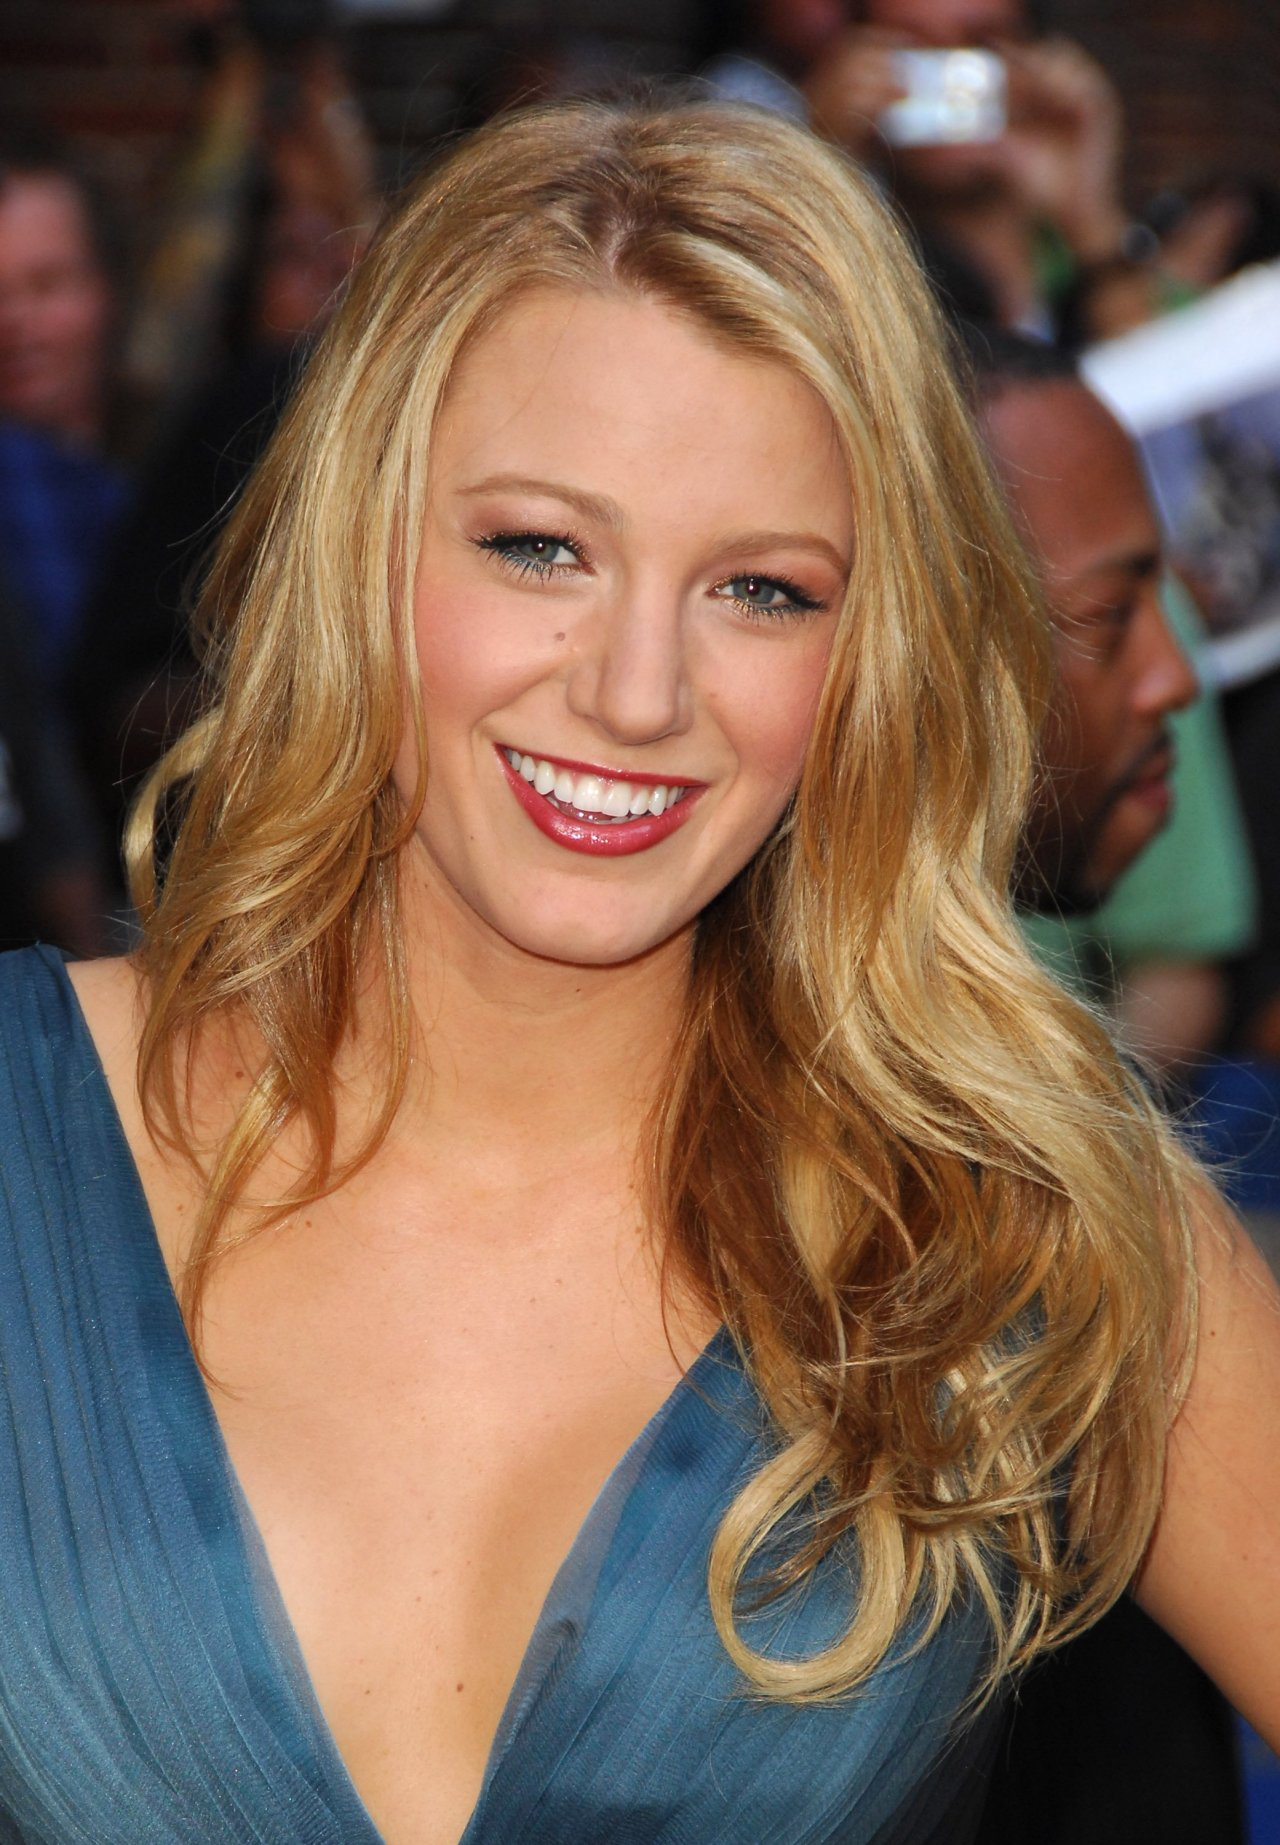 Blake Lively leaked wallpapers